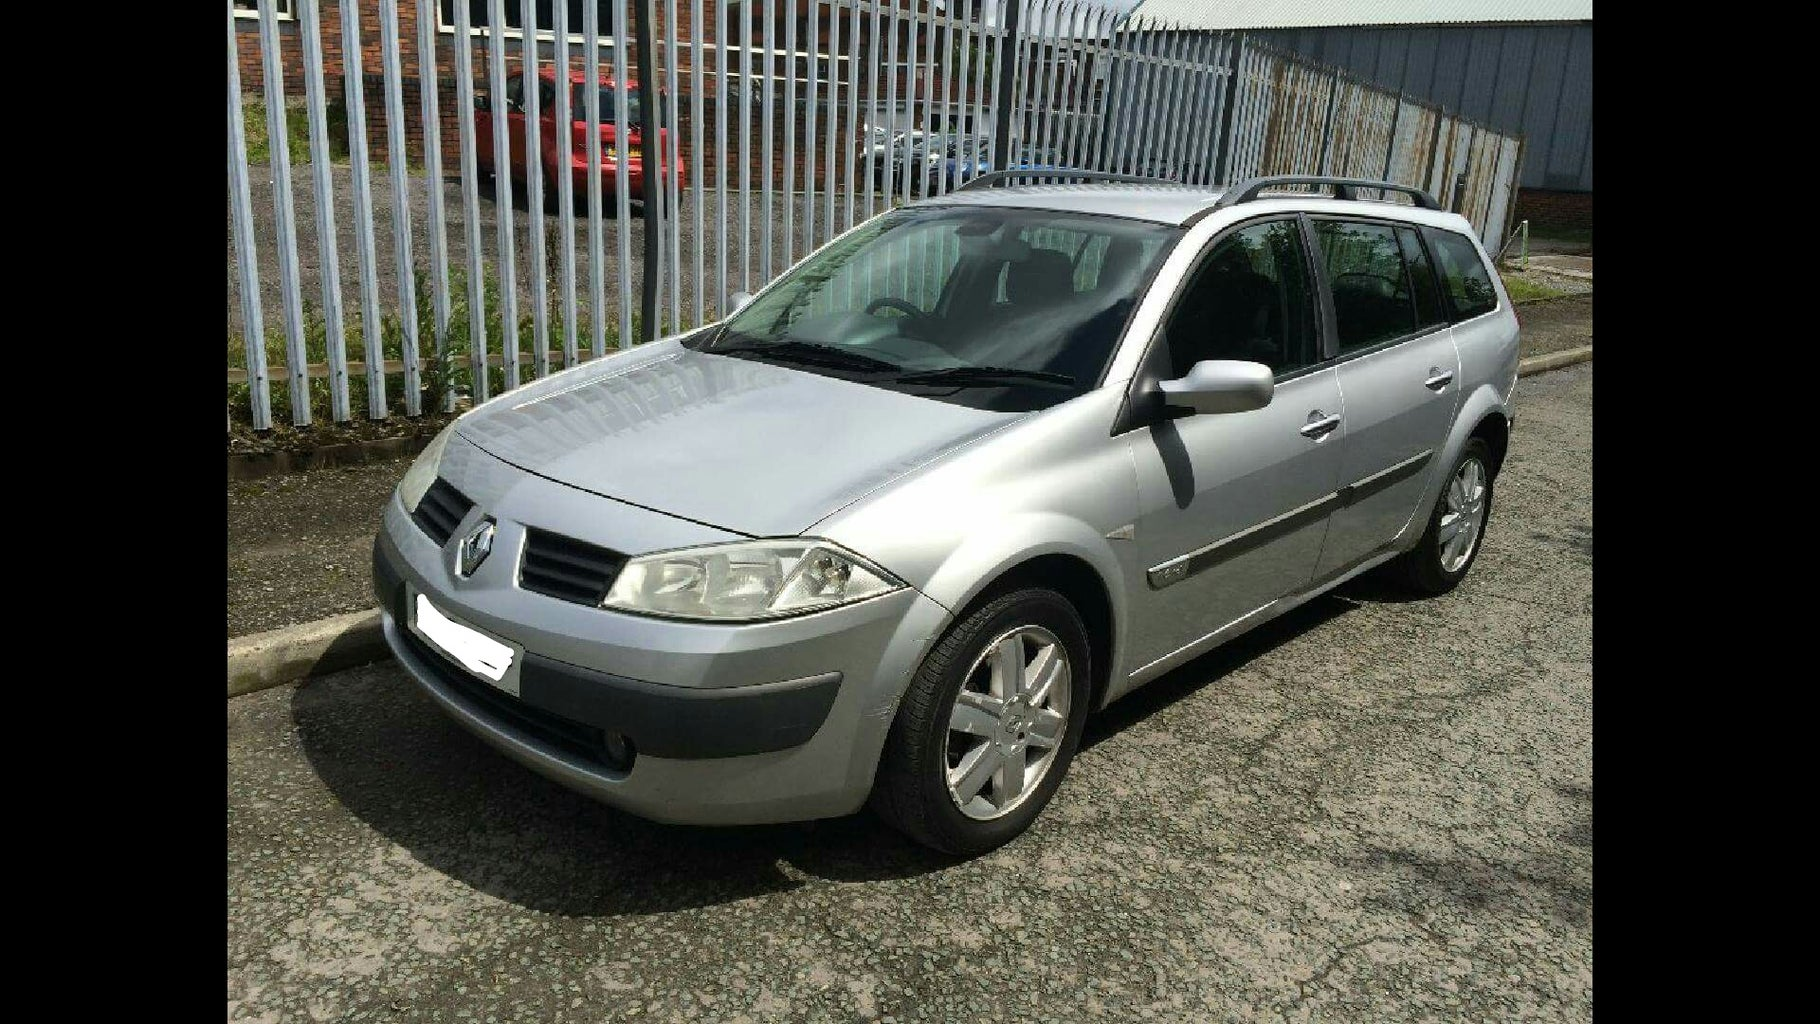 Renault Megane 05 Spark Plug and Coil Replacement!